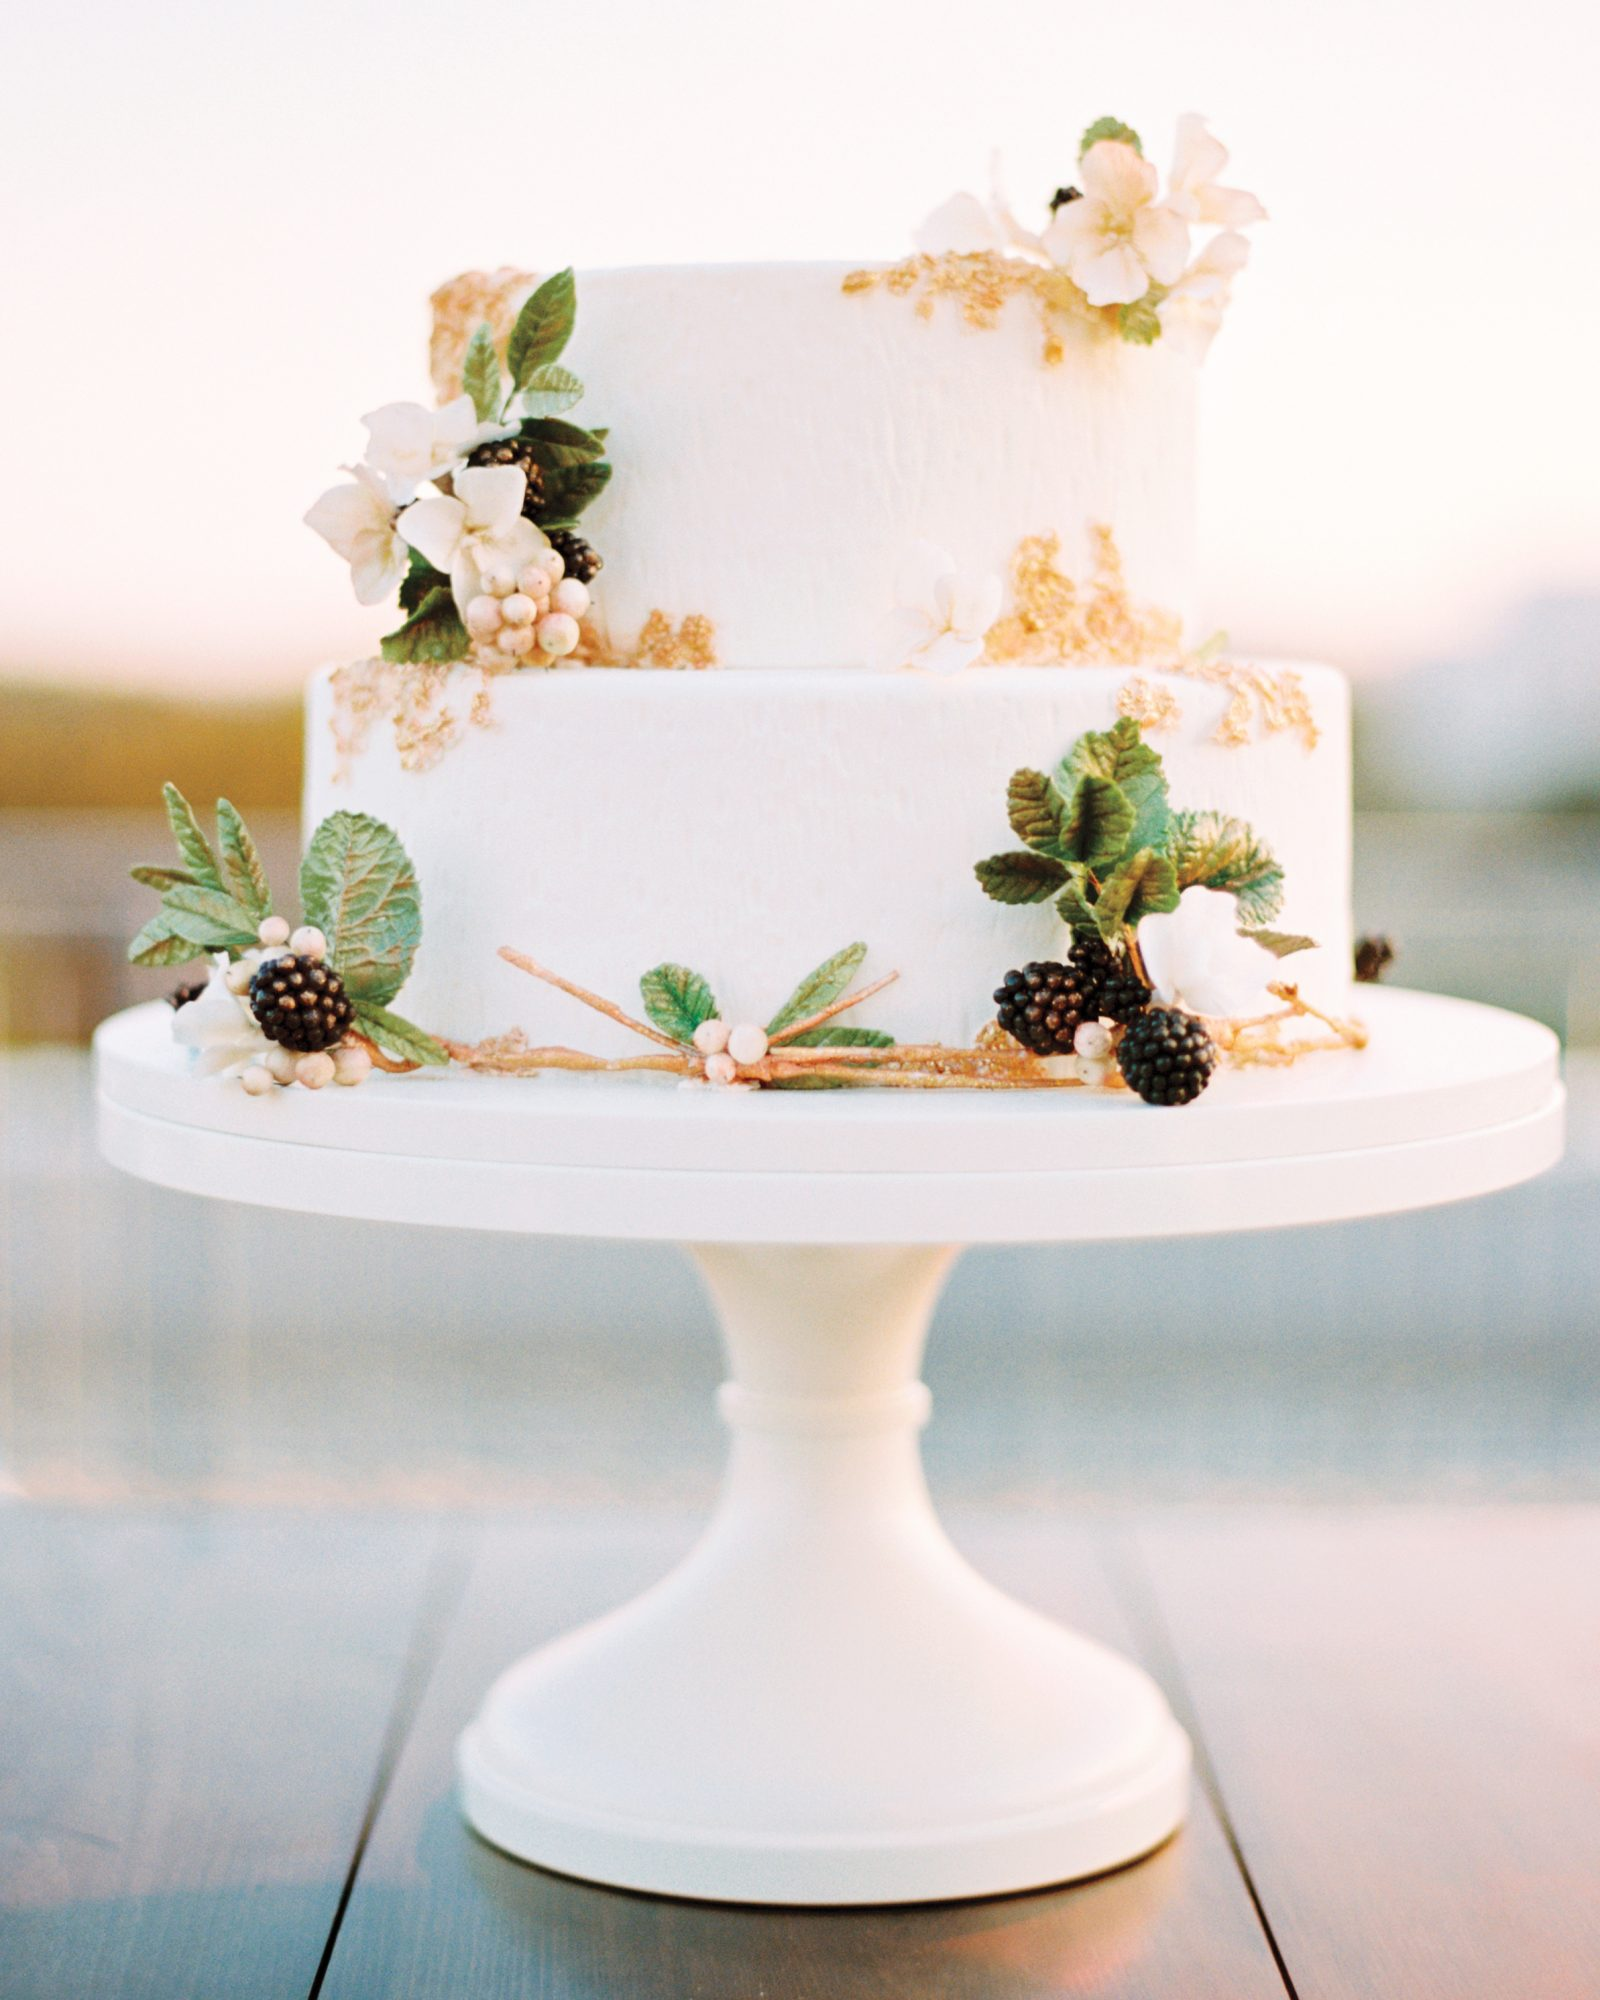 Ringed with sugar flowers, greens, and blackberries, this simple cake brings a little bit of nature to a Washington, D.C., wedding.